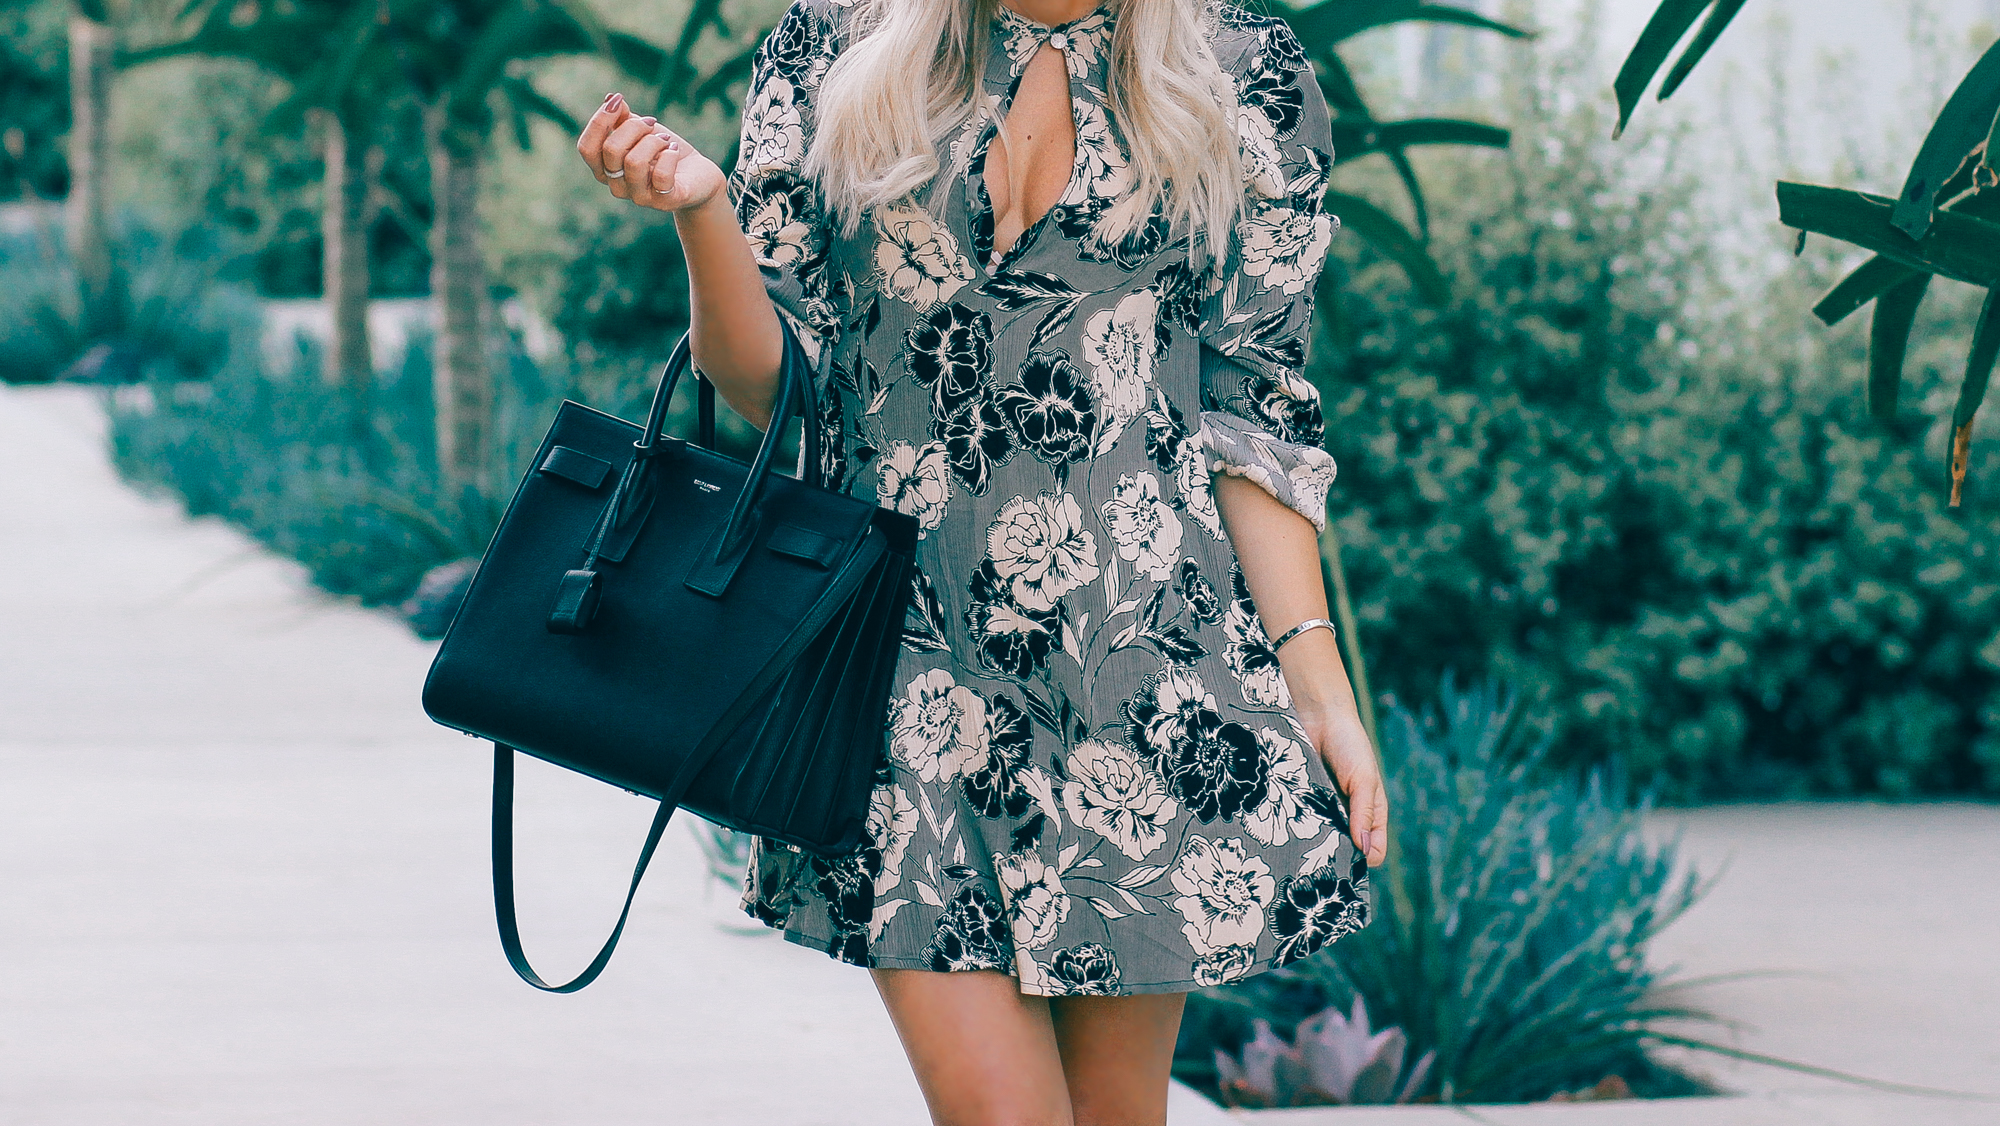 Blondie in the City | Vintage Rose Dress @shopather | YSL Bag